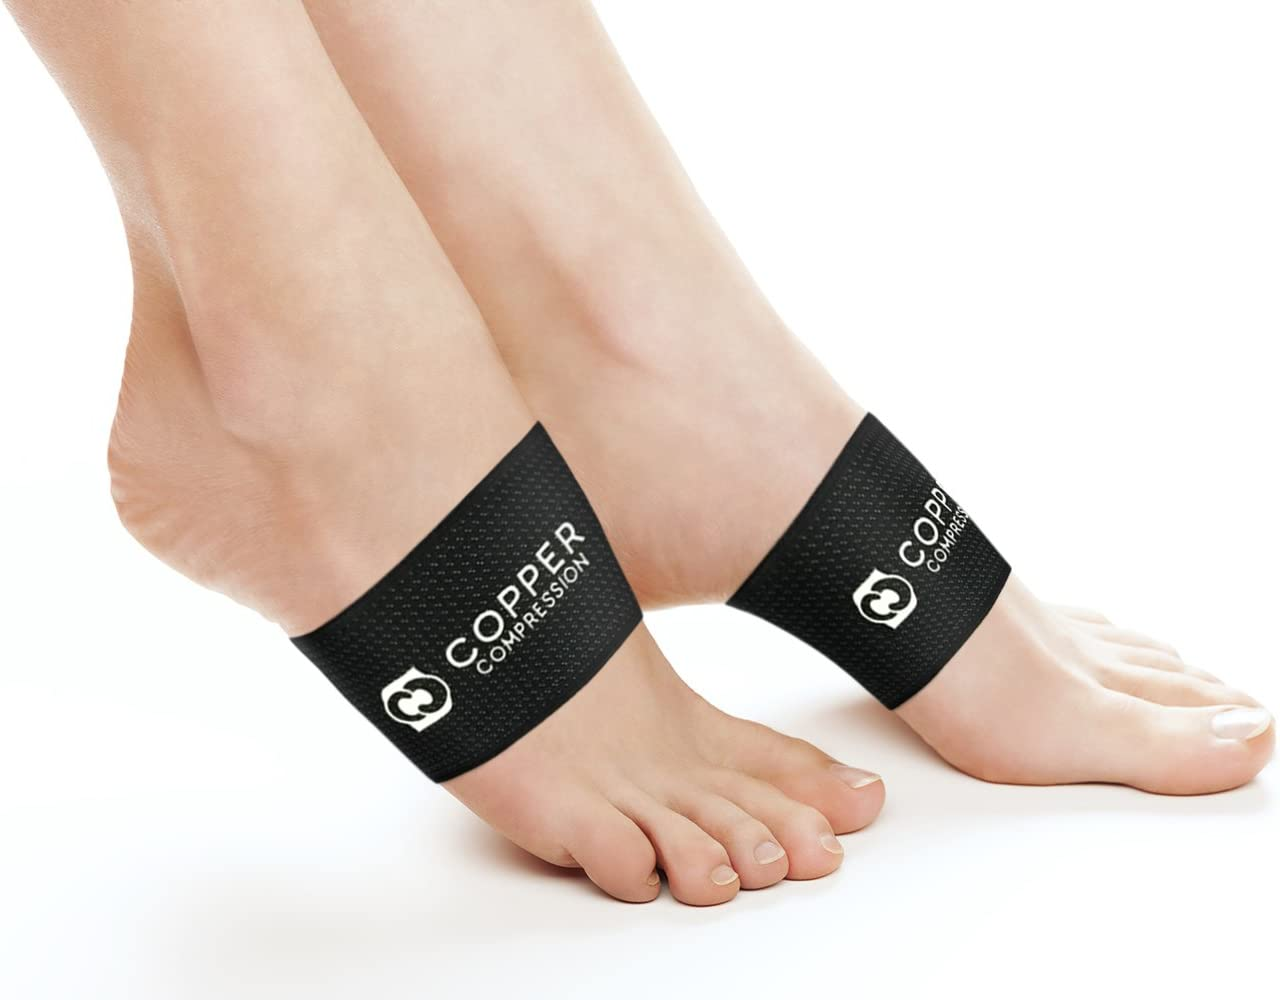 Copper Compression Copper Arch Support - 2 Plantar Fasciitis Braces/Sleeves. Guaranteed Highest Copper Content. Foot Care, Heel Spurs, Feet Pain, Flat Arches (1 Pair Black - One Size Fits All): Health & Personal Care